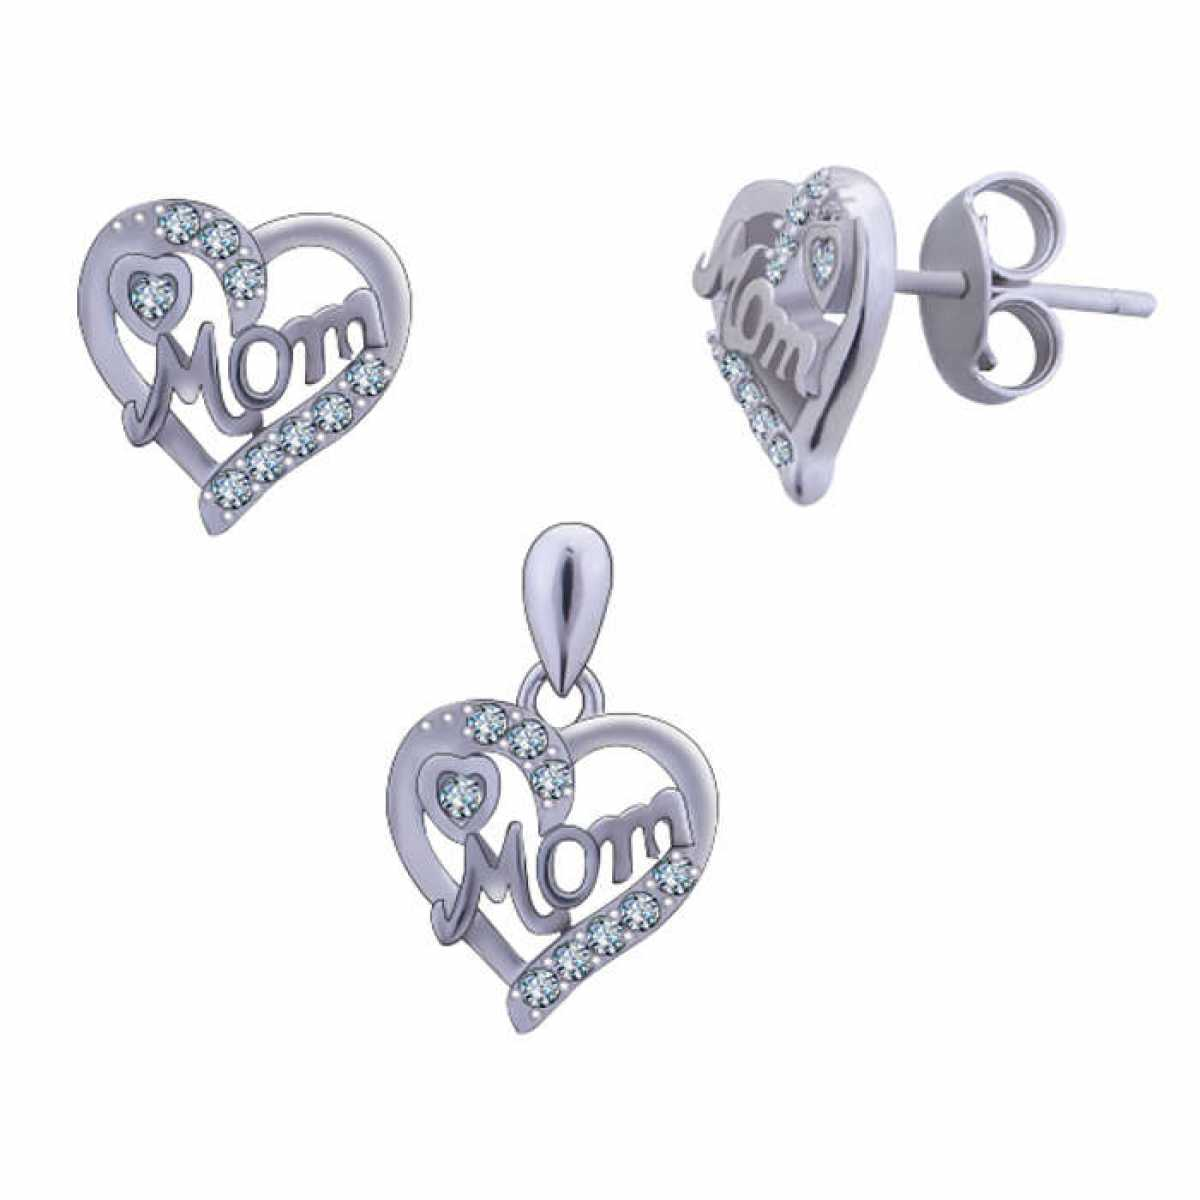 Love For Mom  Silver Pendant Set